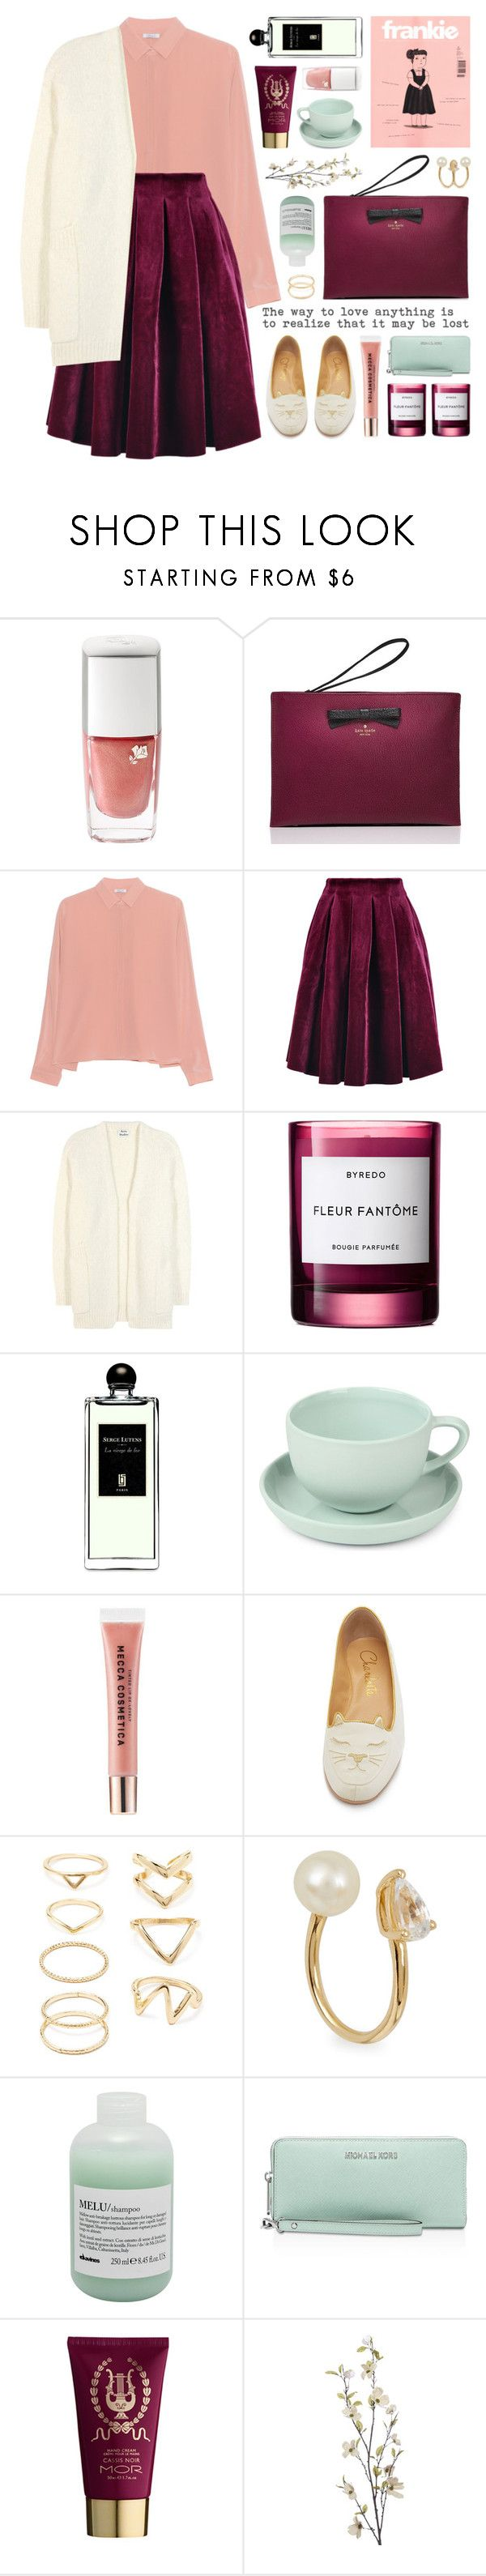 """pleated velvet skirt"" by jesuisunlapin ❤ liked on Polyvore featuring Lancôme, Kate Spade, iHeart, Maje, Acne Studios, Byredo, Serge Lutens, Mud Australia, Charlotte Olympia and Forever 21"